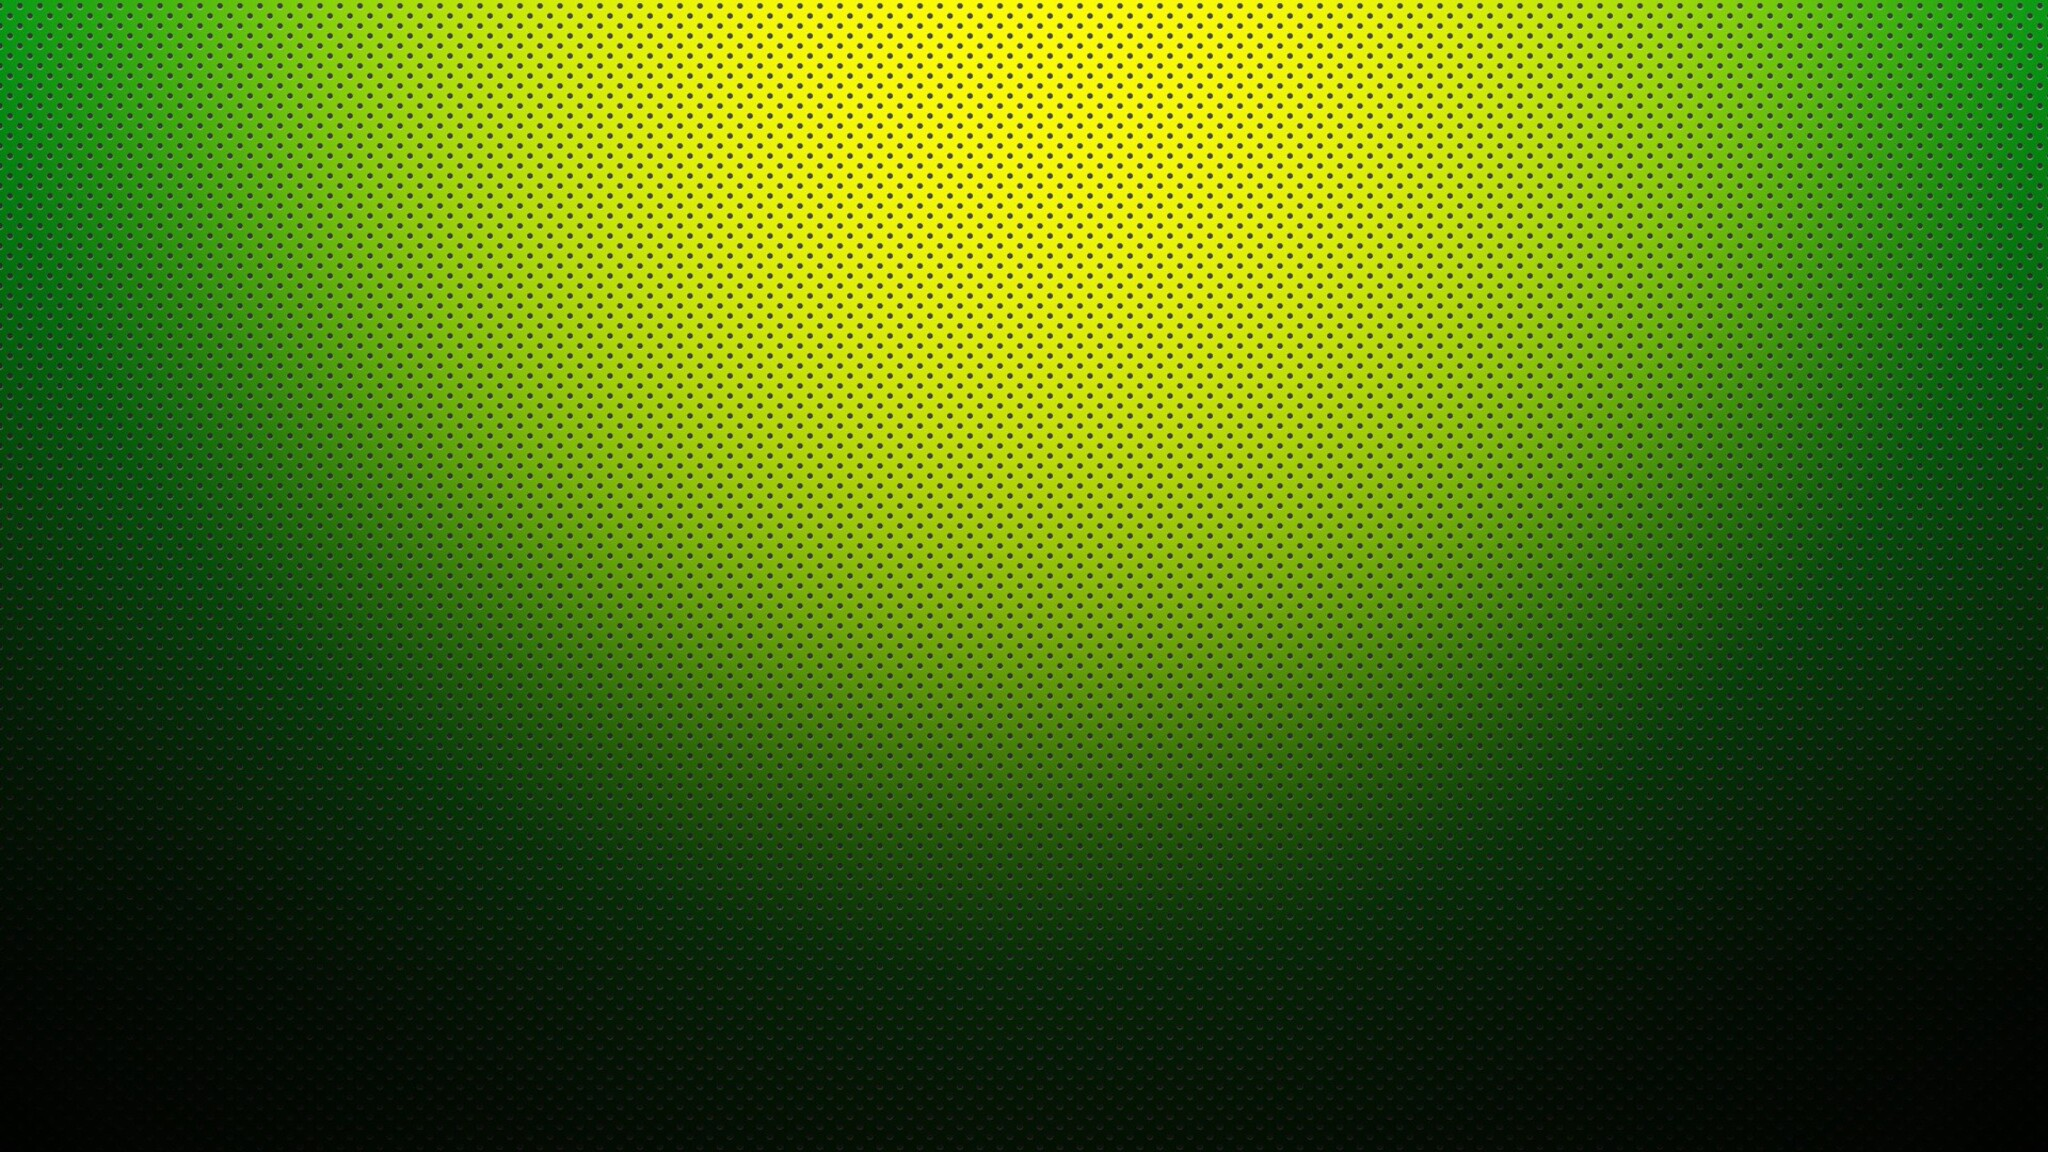 2048x1152 green leather background 2048x1152 resolution hd for 2048x1152 wallpaper